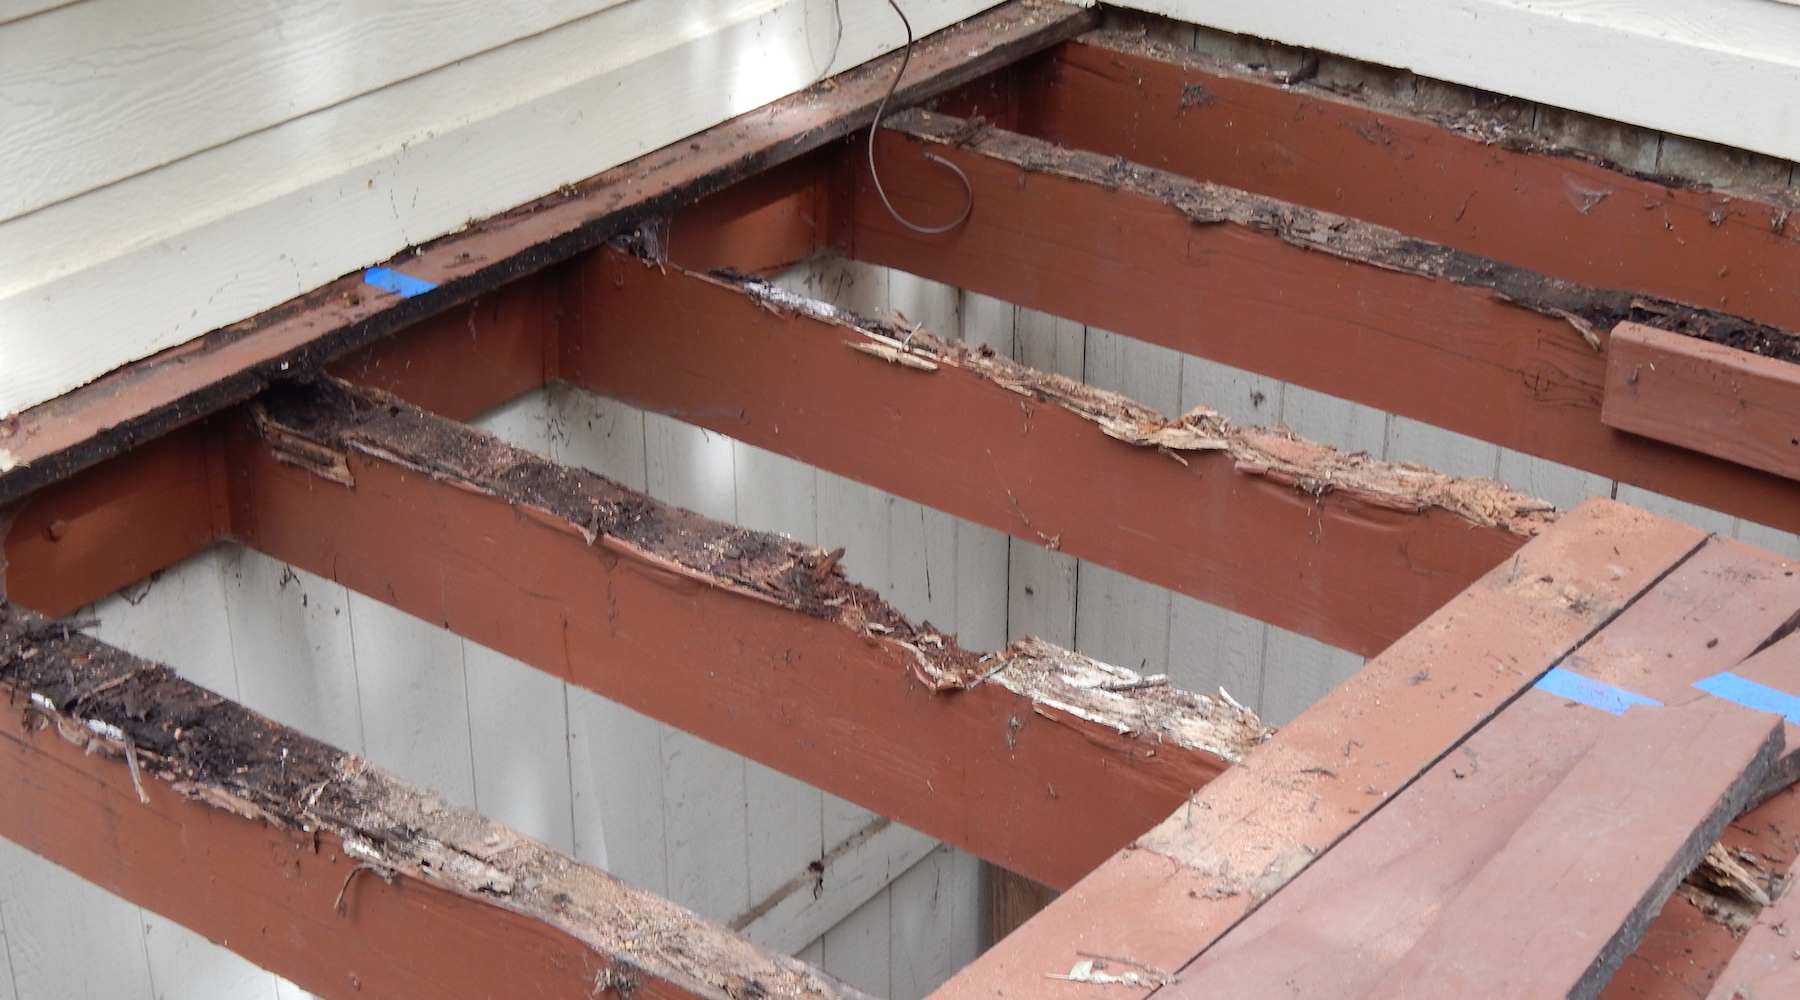 Rot on wooden deck joists and beams